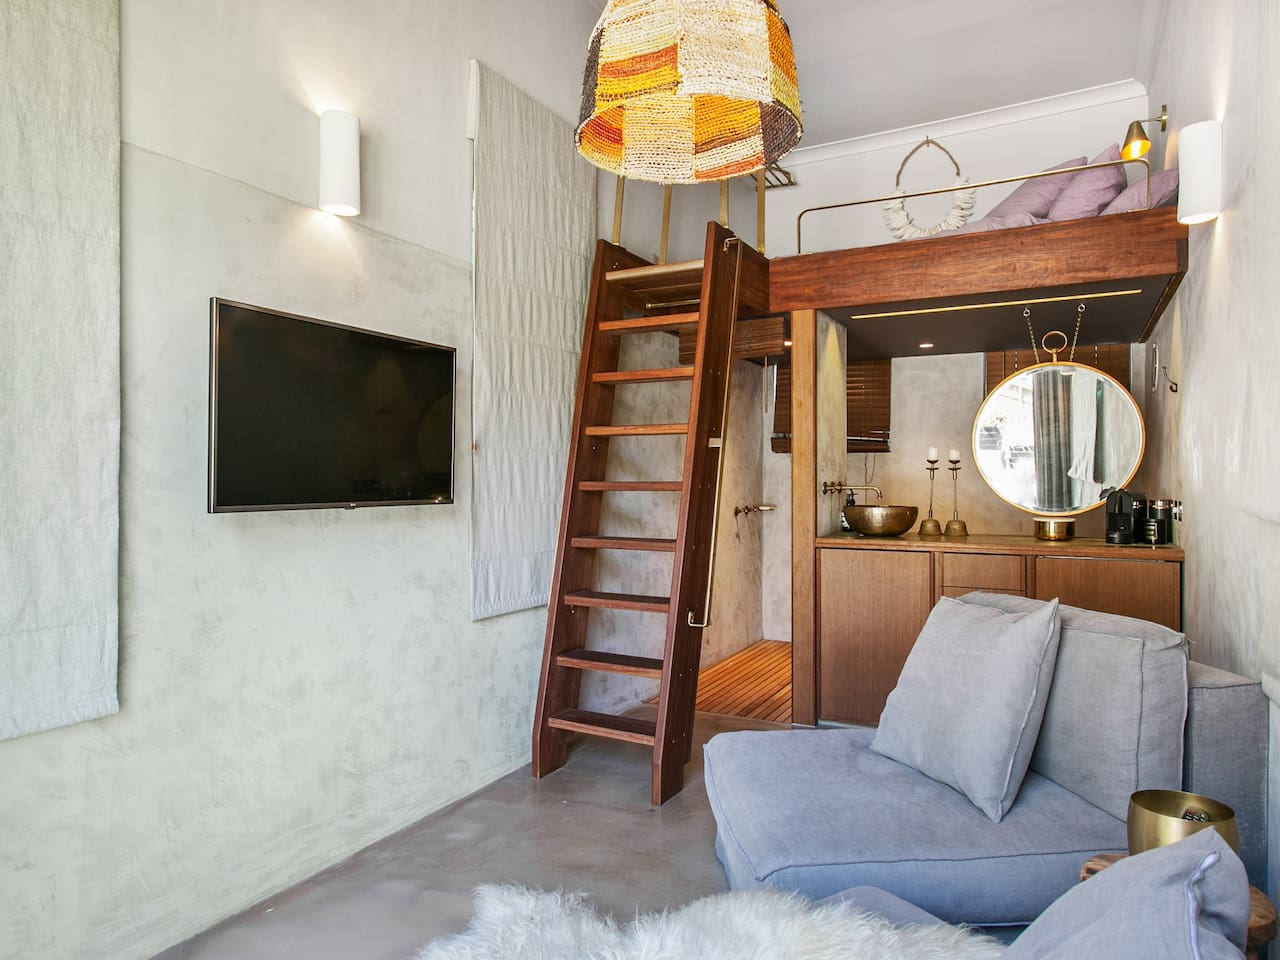 Self contained studio with double sized loft bed, bathroom with shower, and kitchenette. Flat screen tv and sofa chairs. Reverse cycle AC and heating to keep comfortable.